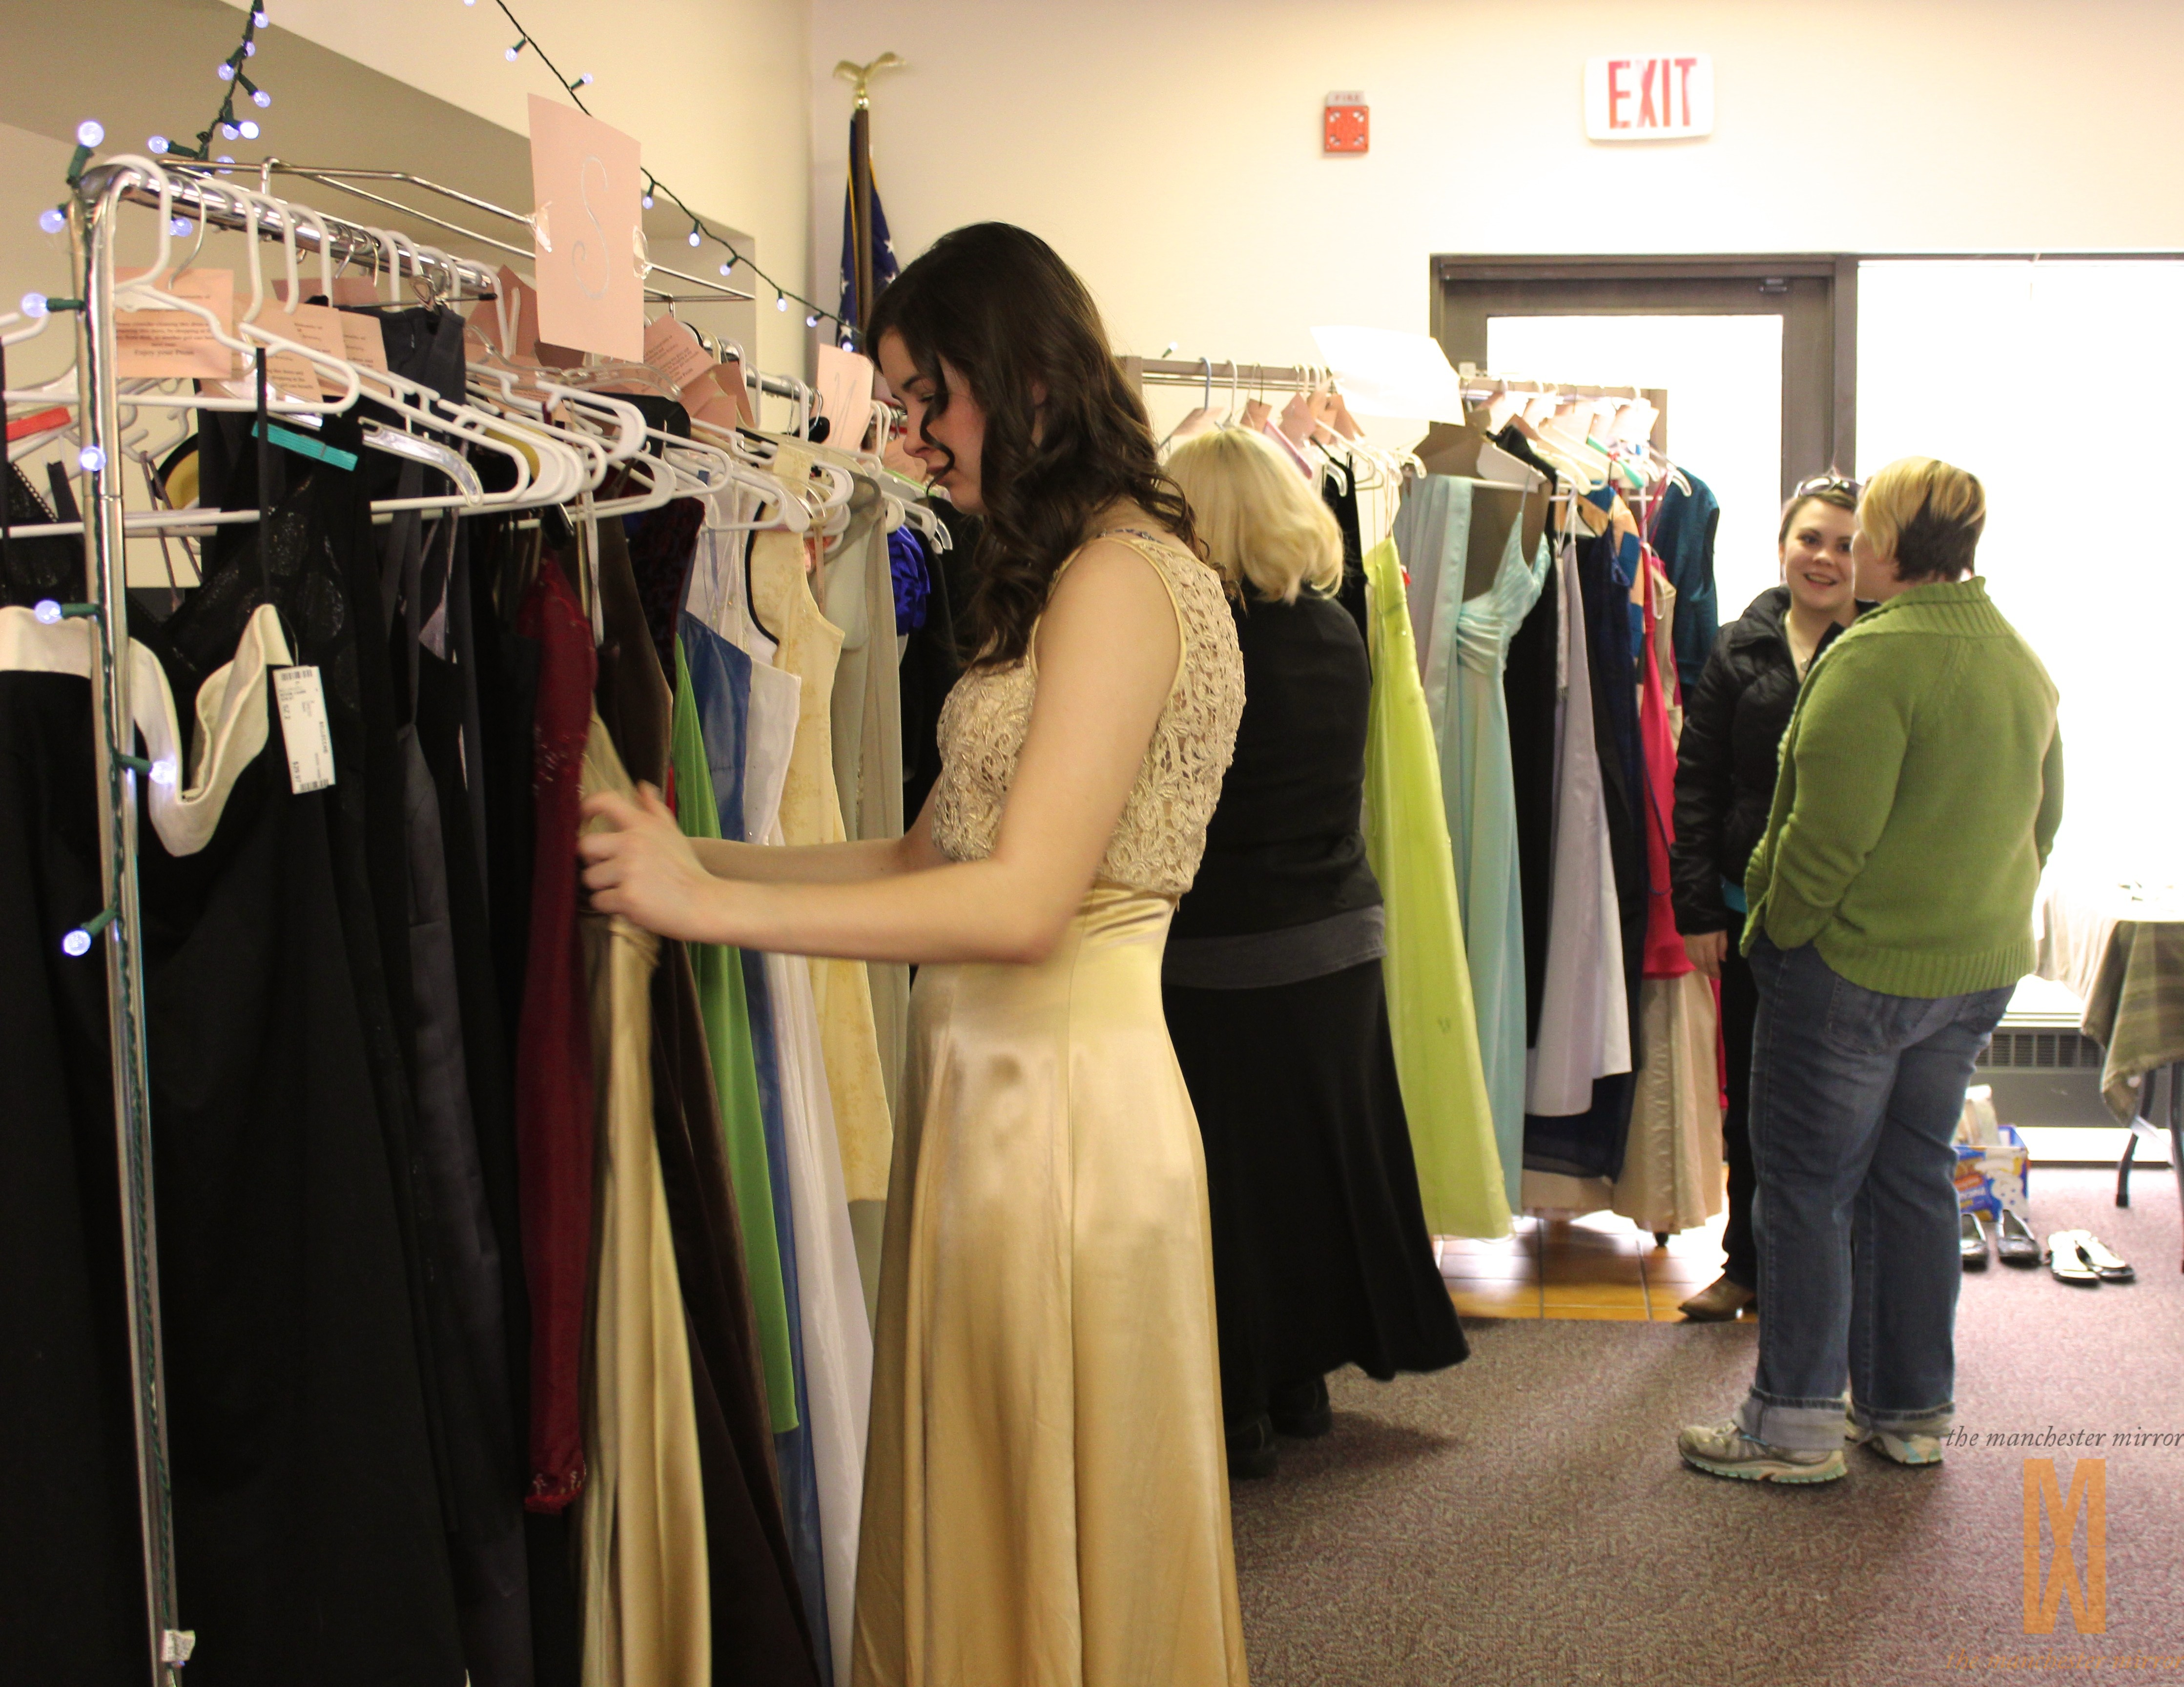 20 Girls Find Dresses at the Free Prom Dress Shop | The Manchester ...